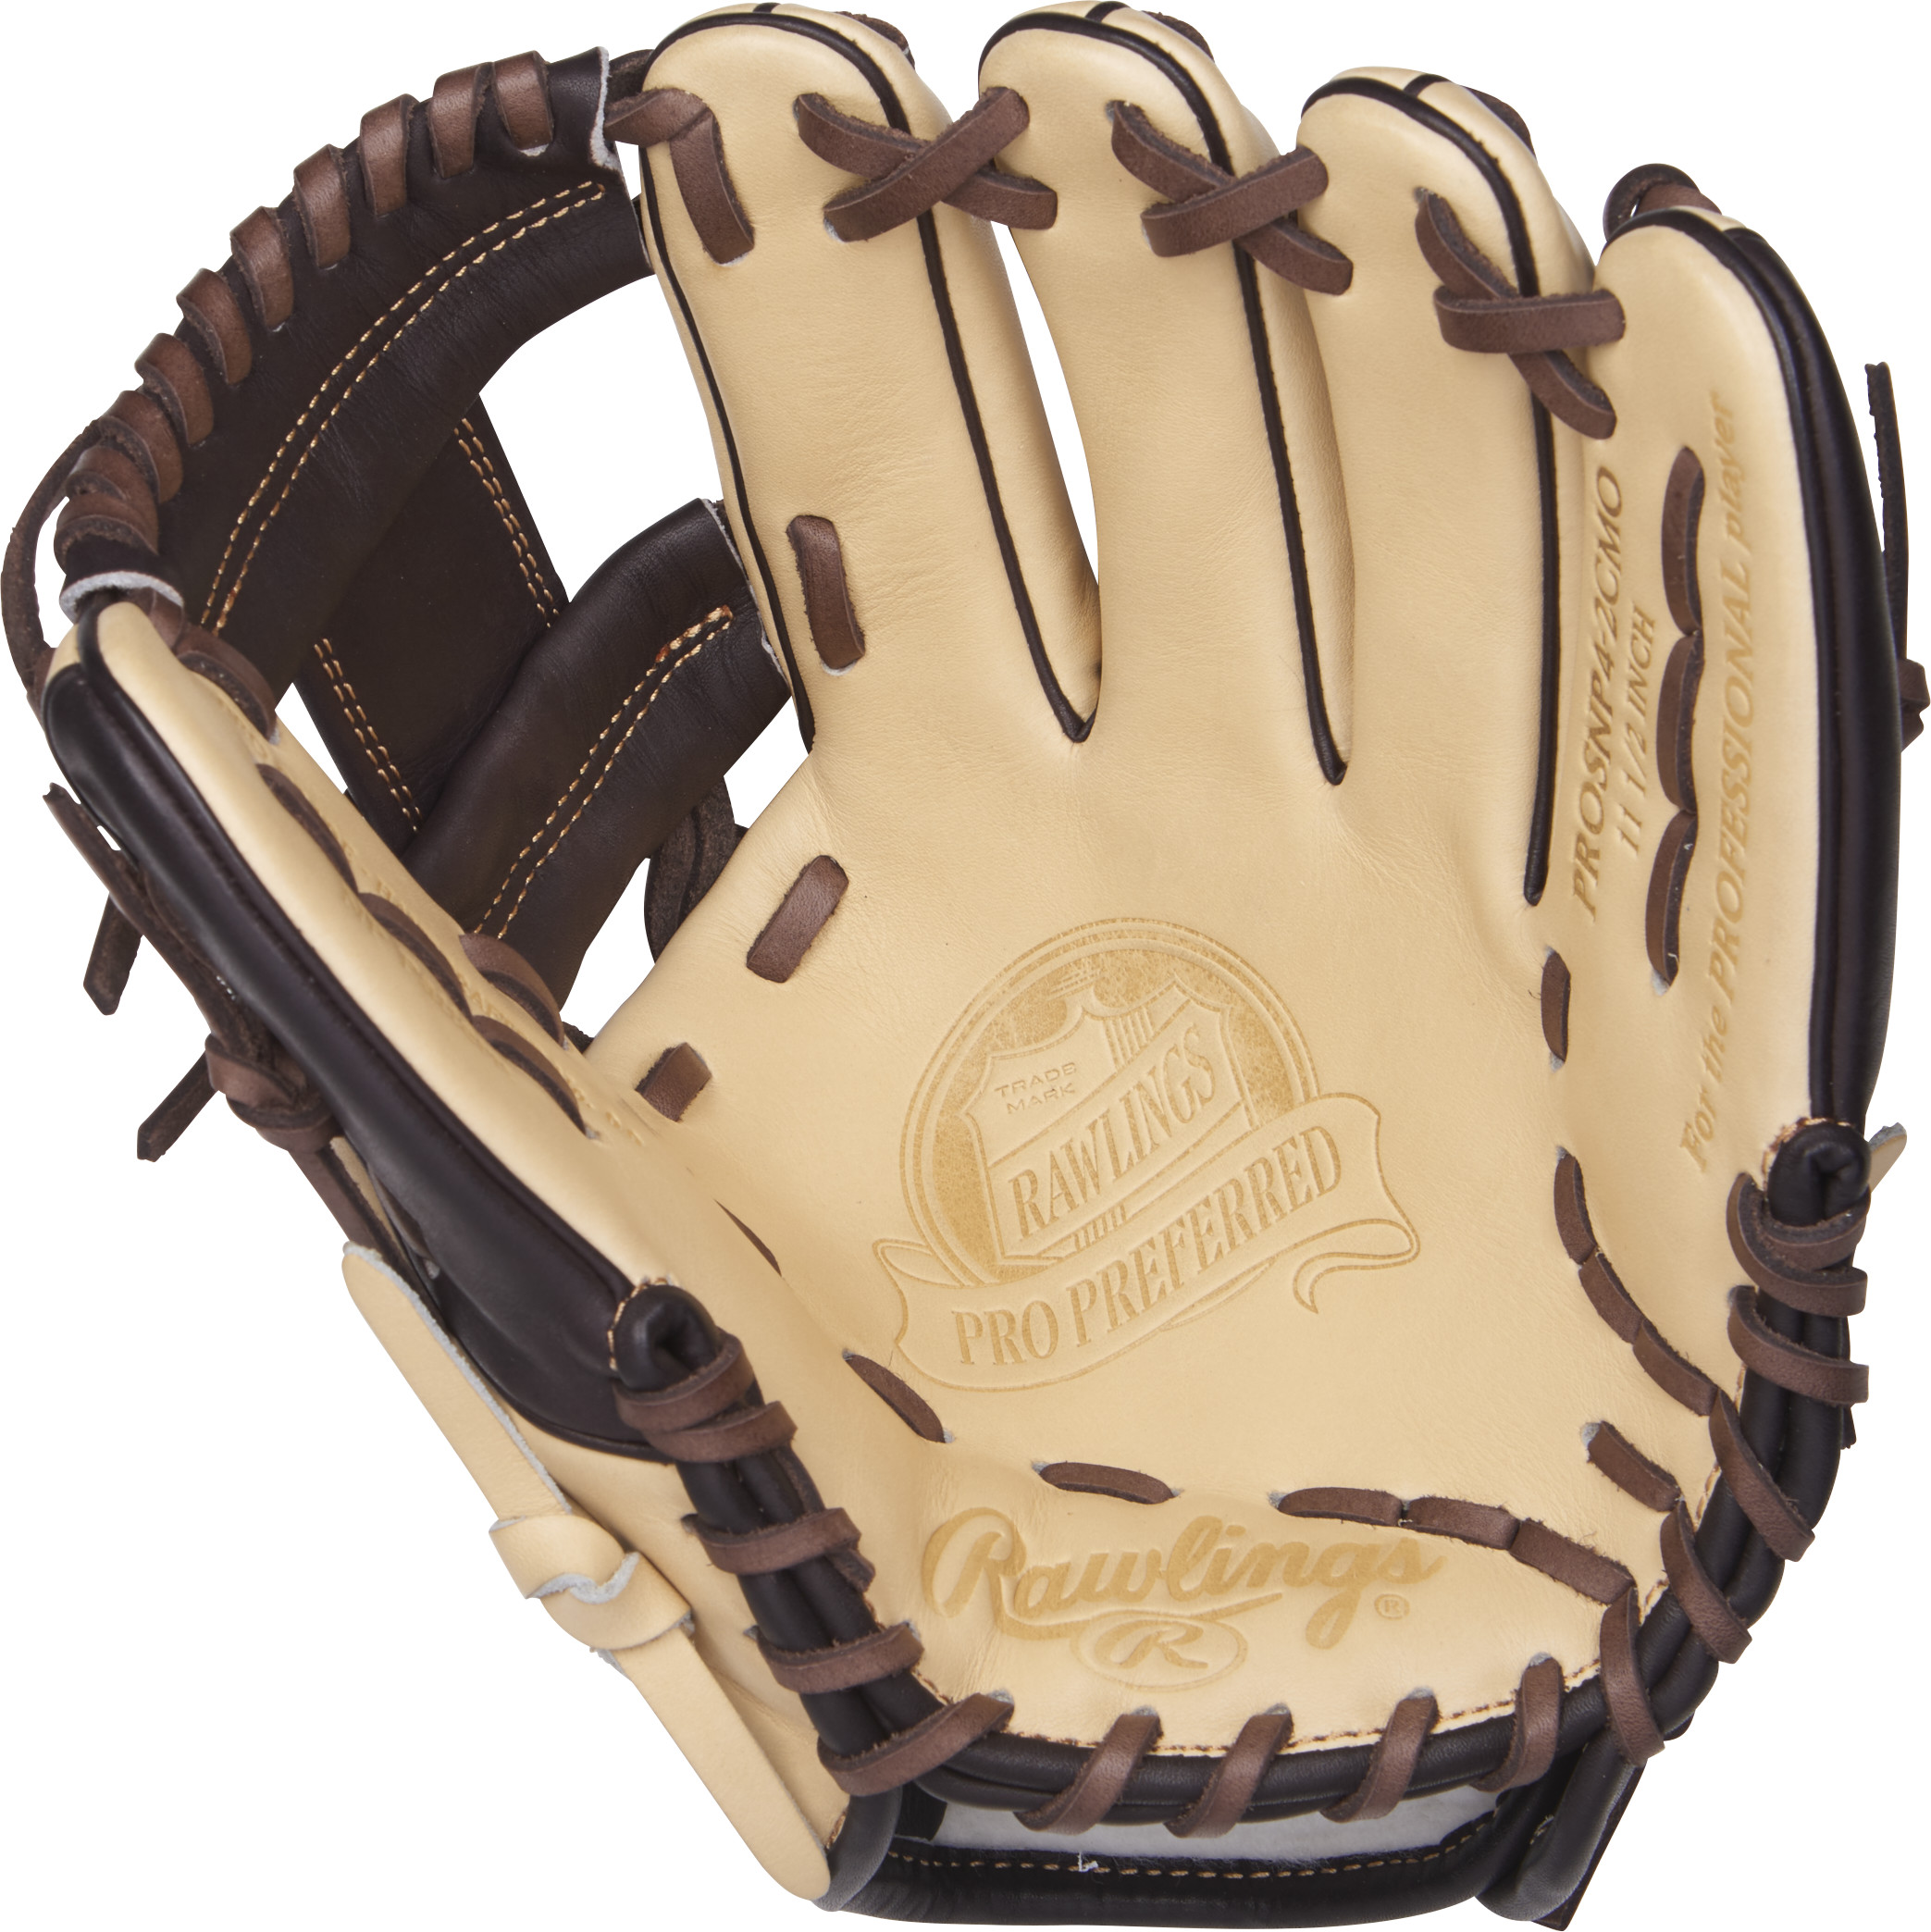 http://www.bestbatdeals.com/images/gloves/rawlings/PROSNP4-2CMO-1.jpg